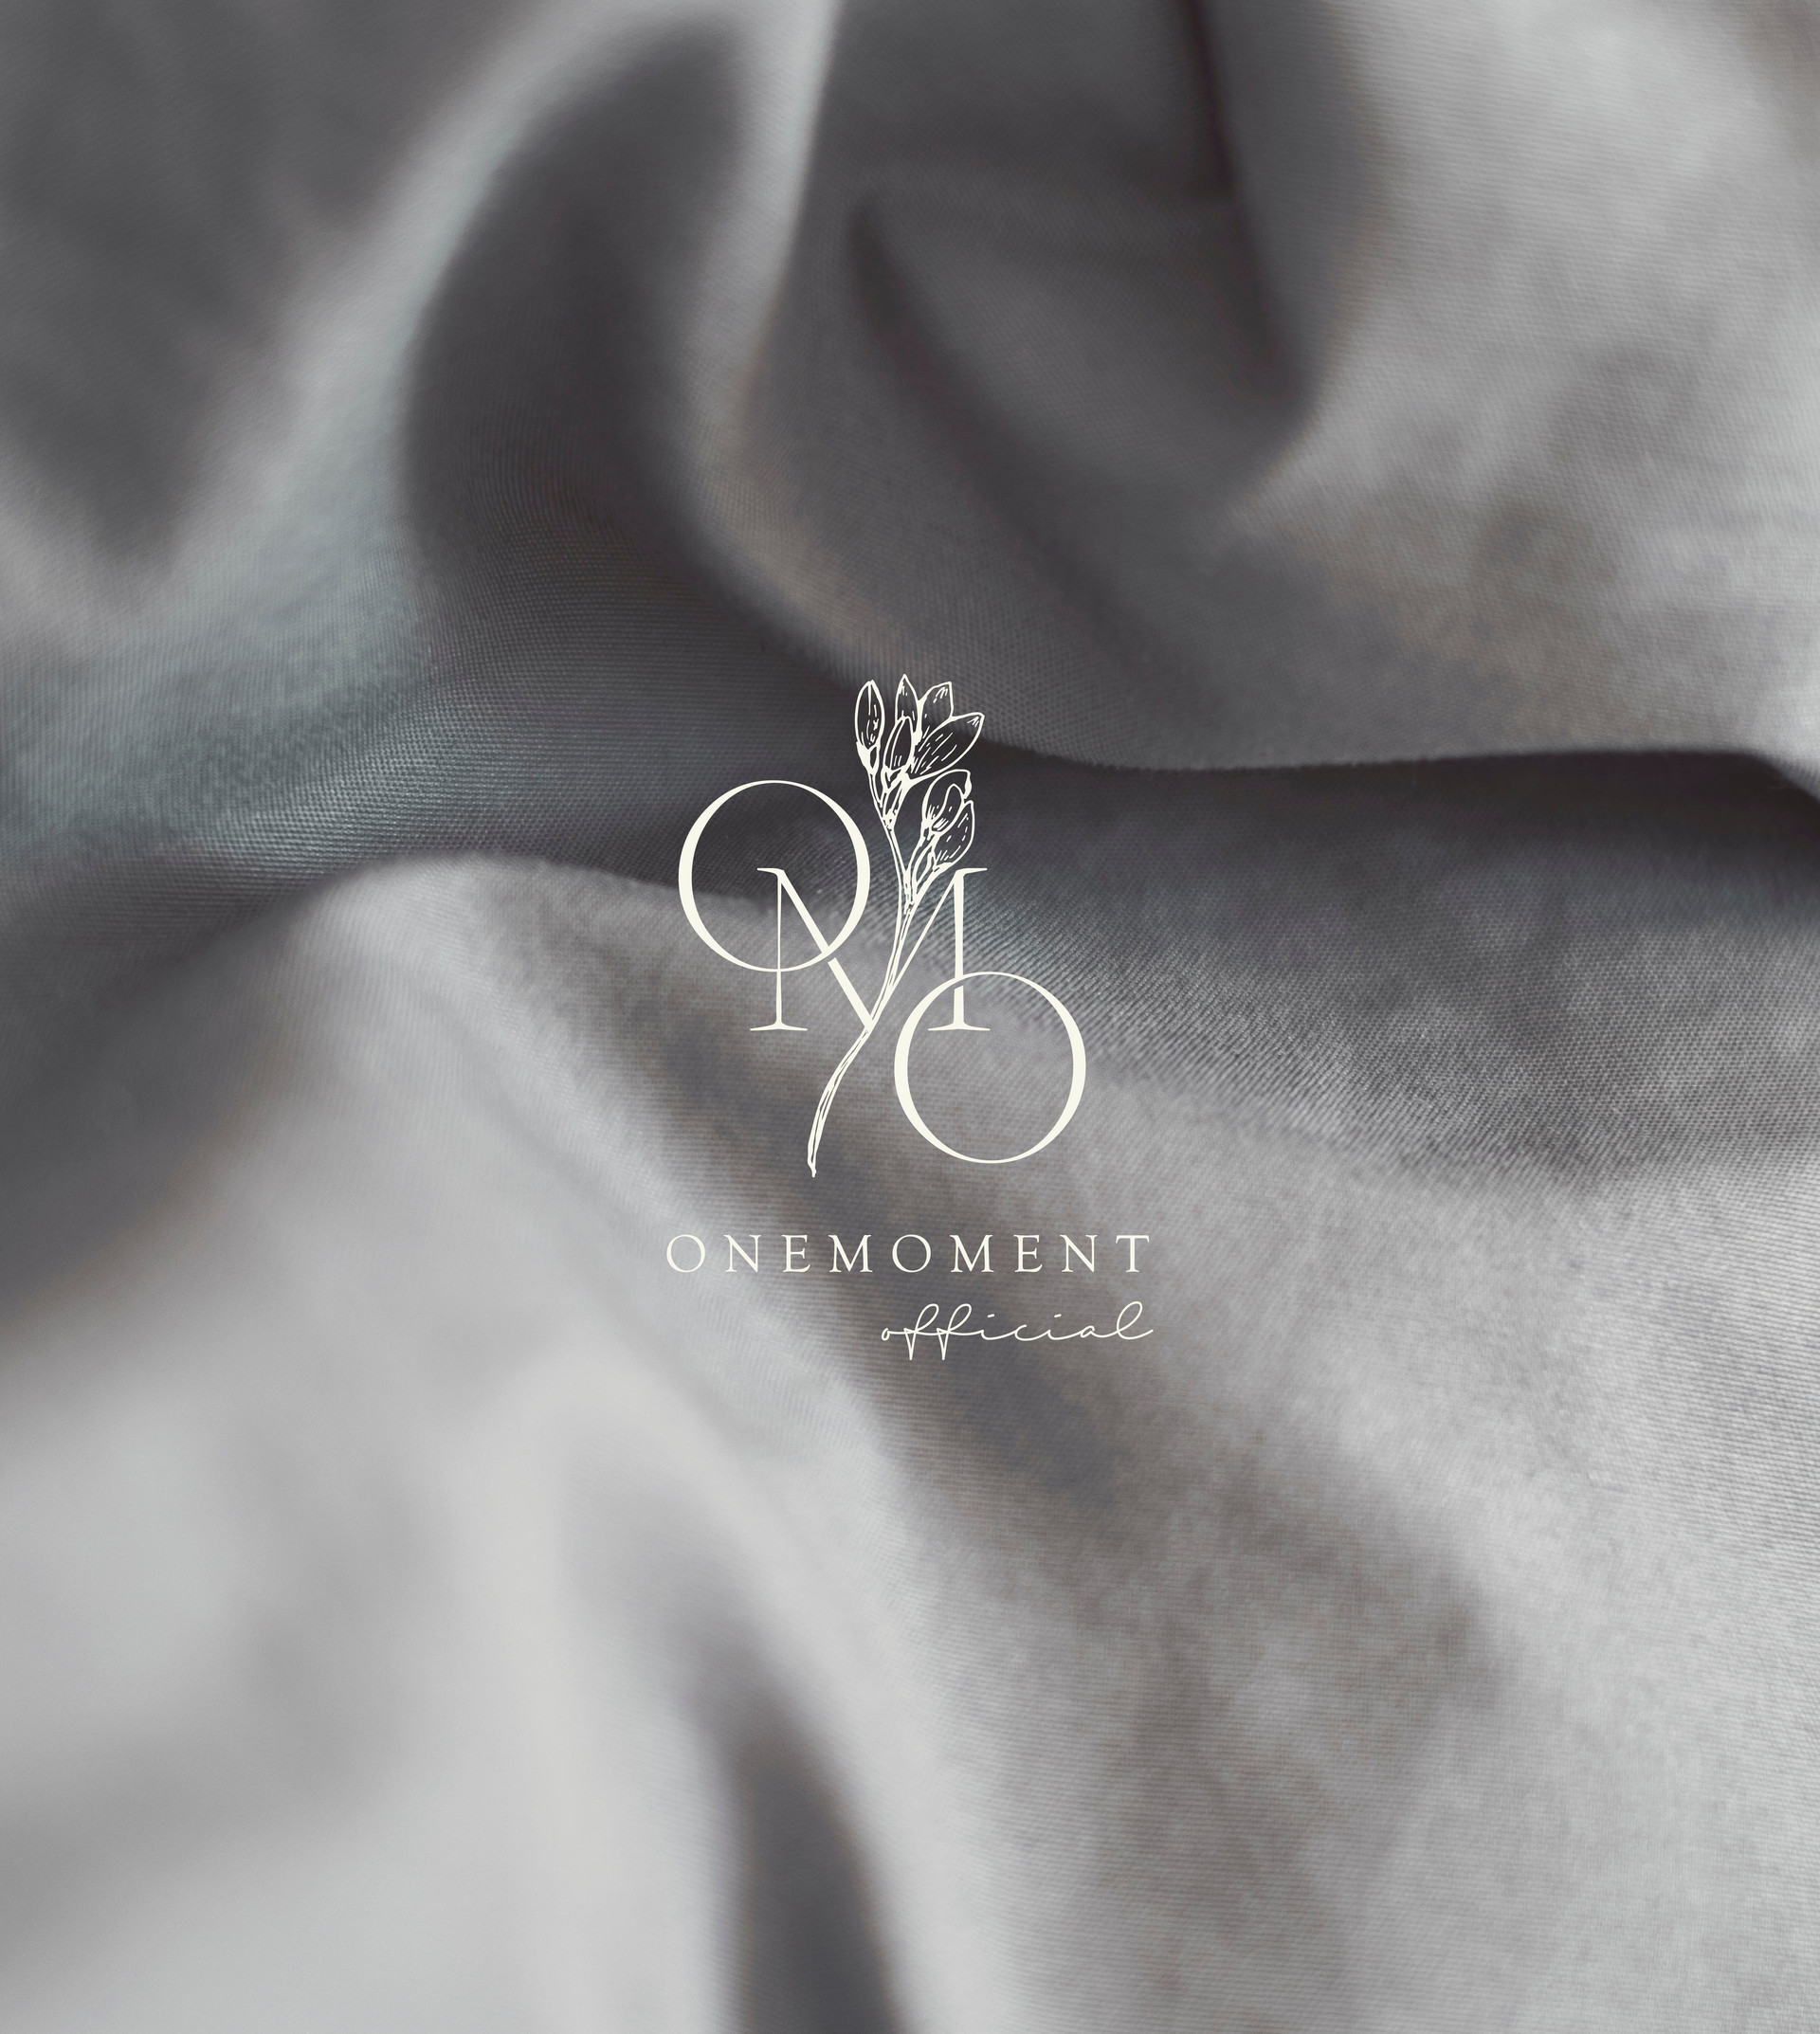 One Moment Official